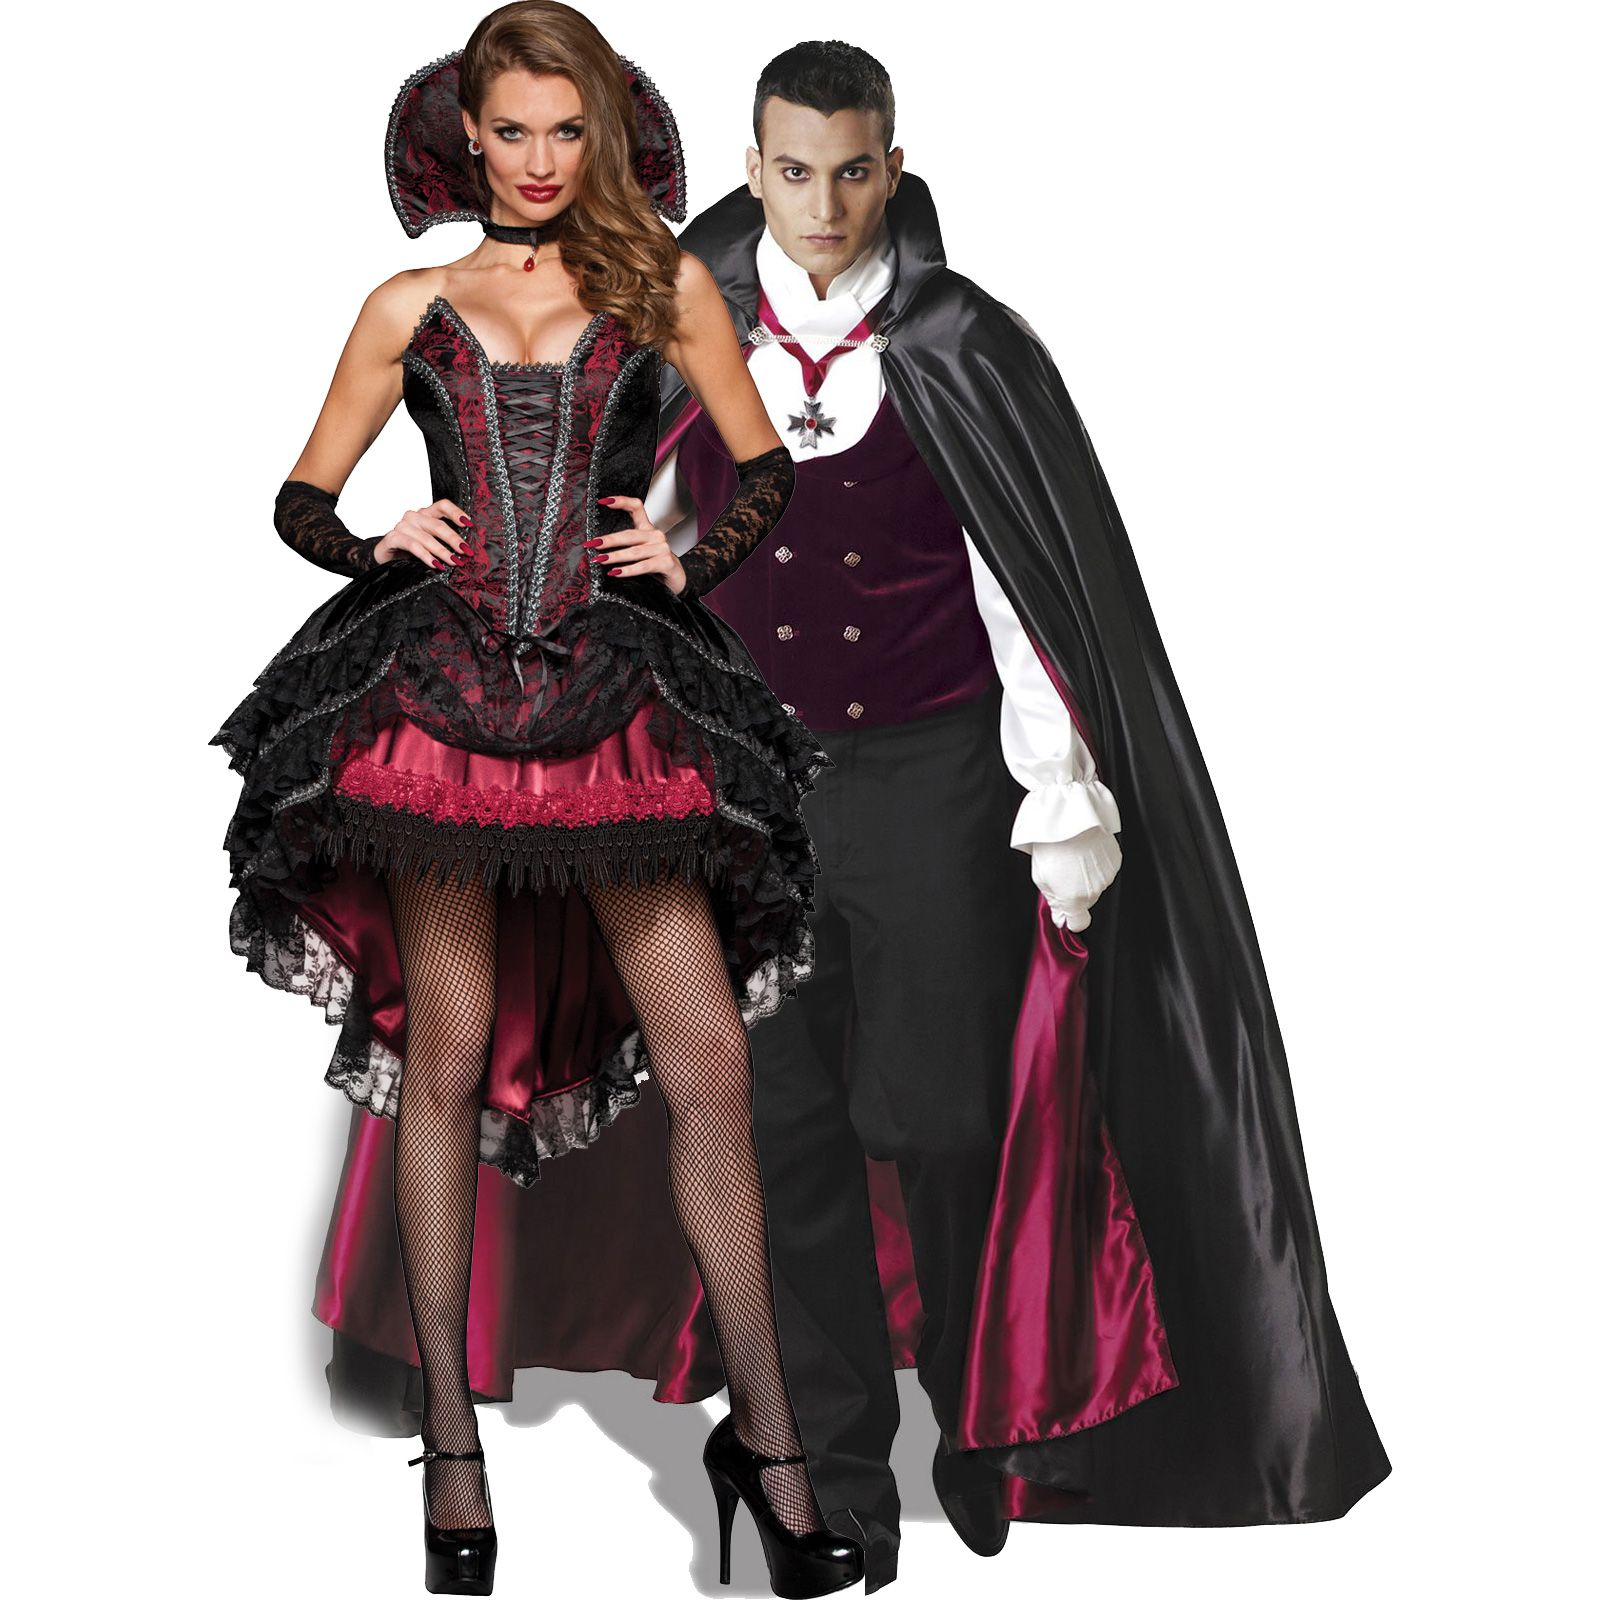 Vampire Couple Halloween Costumes.Pin On Cute Couples Costumes